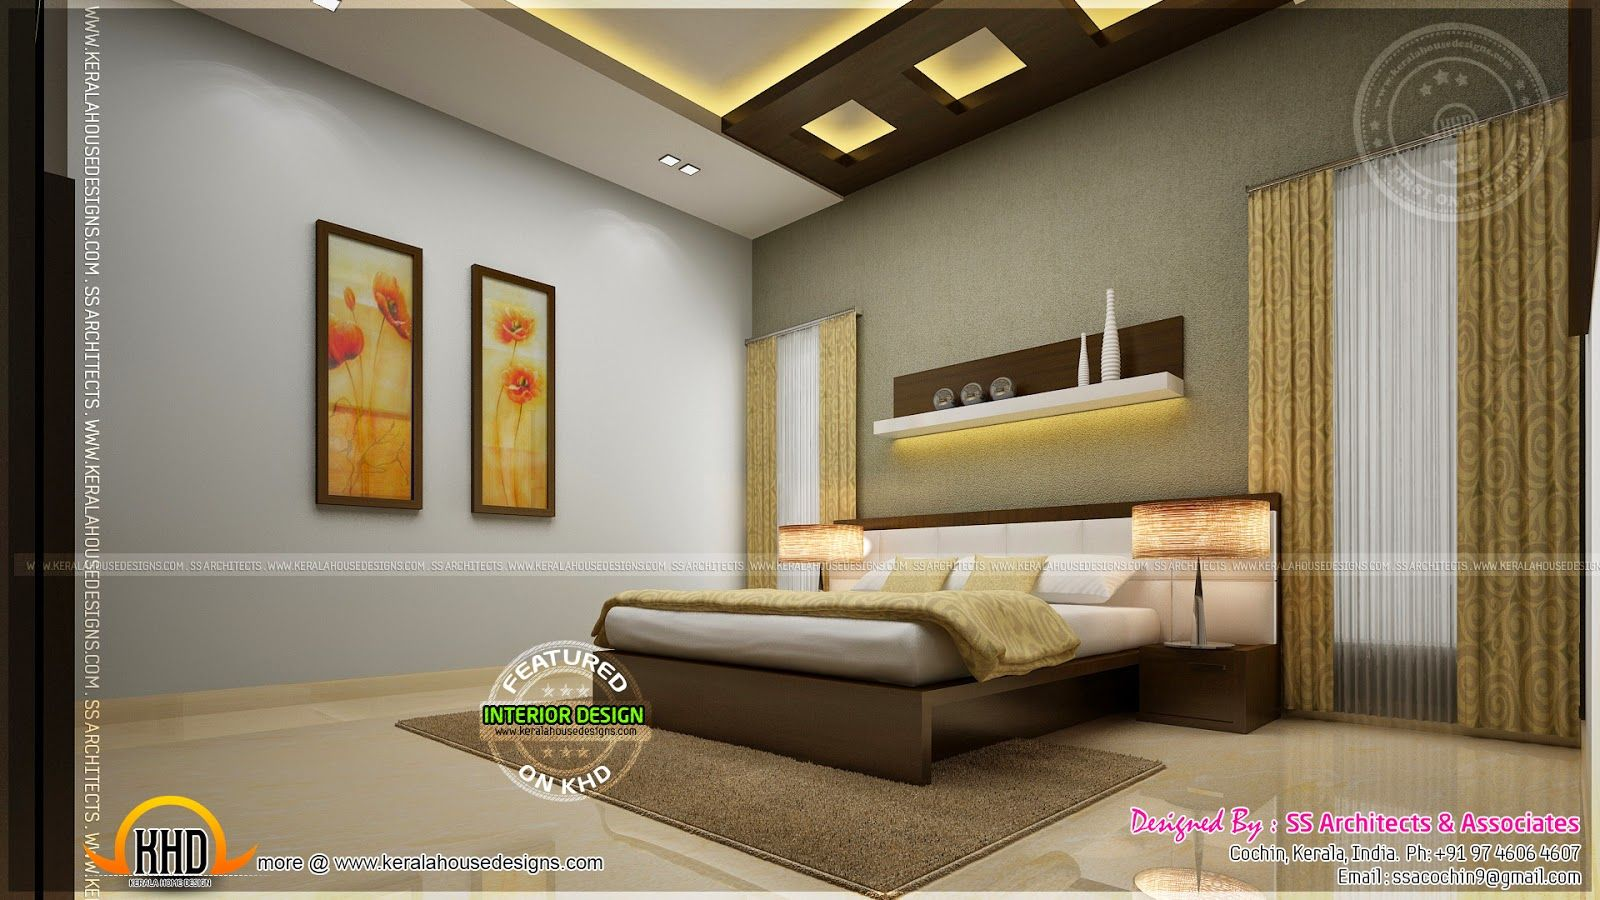 Indian master bedroom interior design google search for Indian bedroom design photos